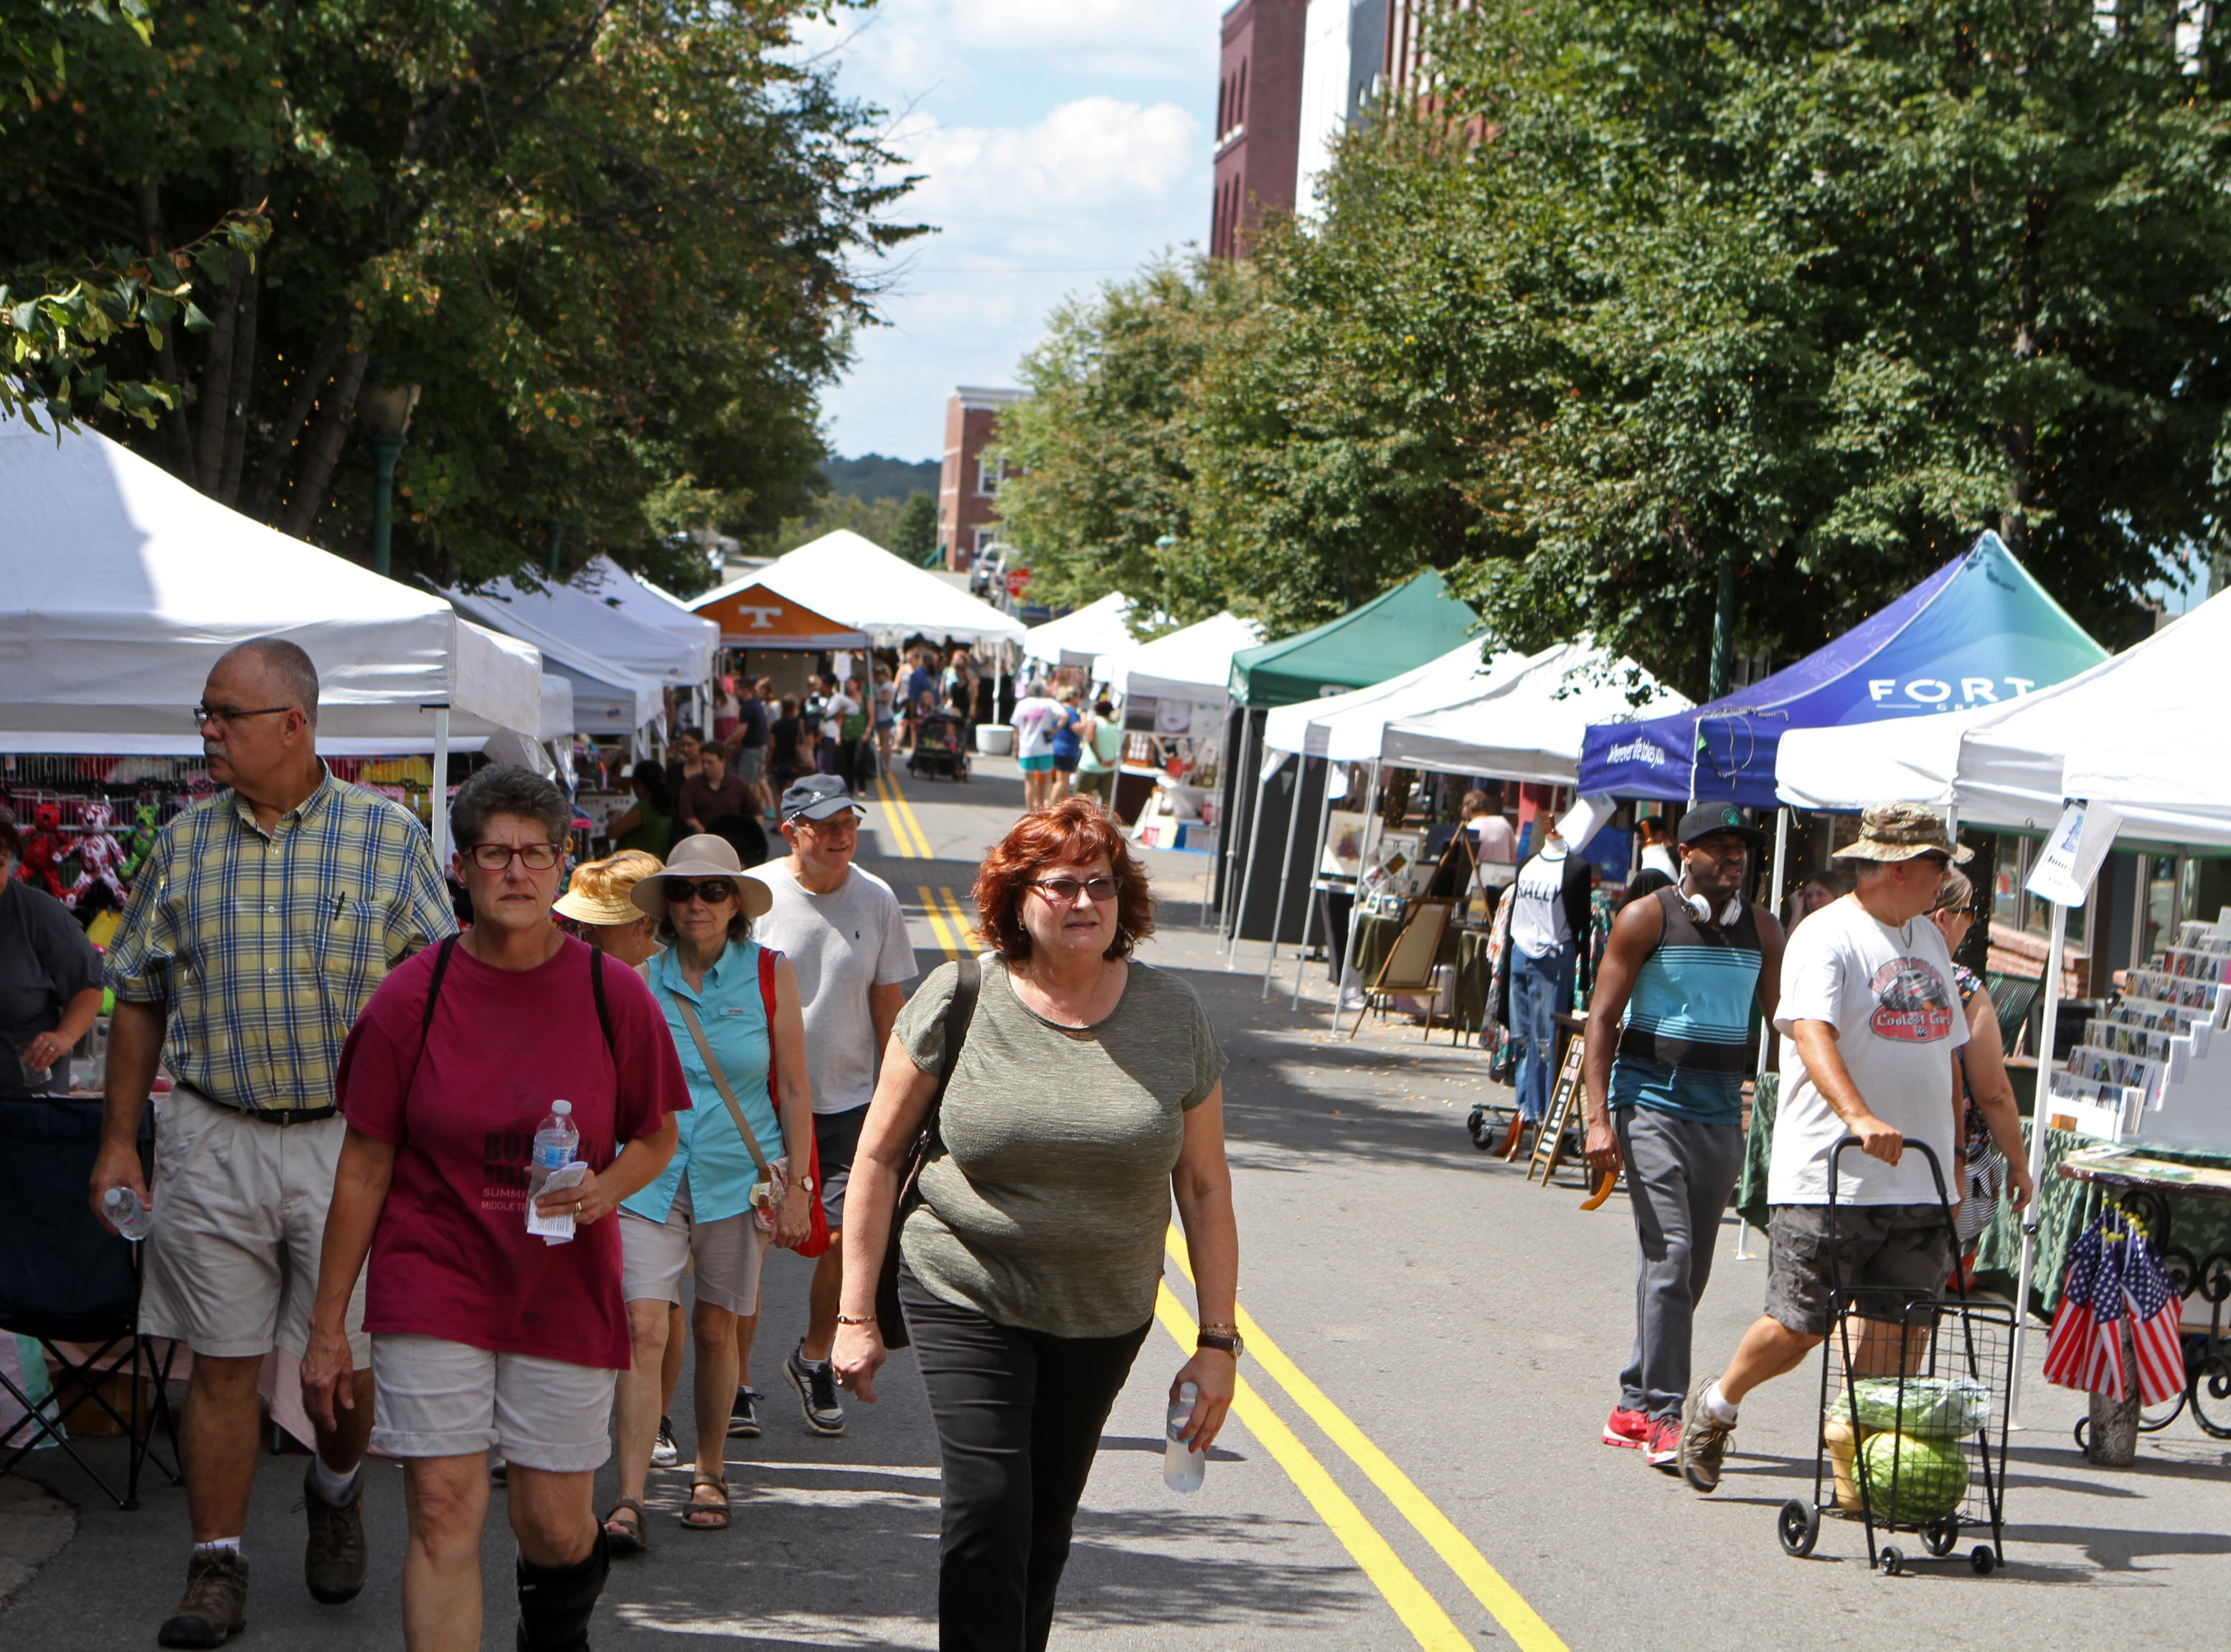 Hundreds came out for Frolic on Franklin Saturday, Sept, 15, 2018.